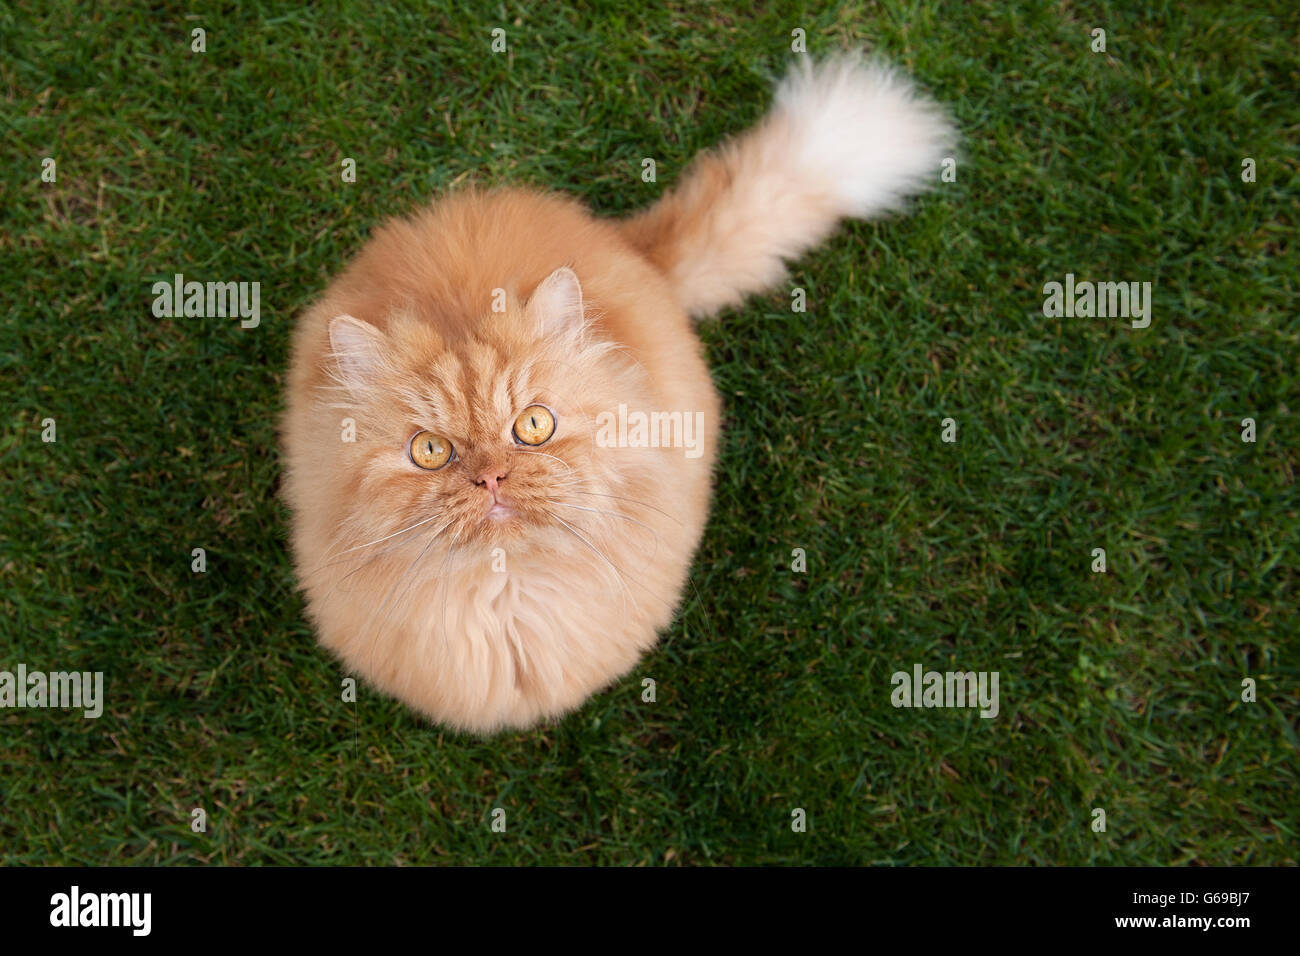 High angle view of Persian cat - Stock Image